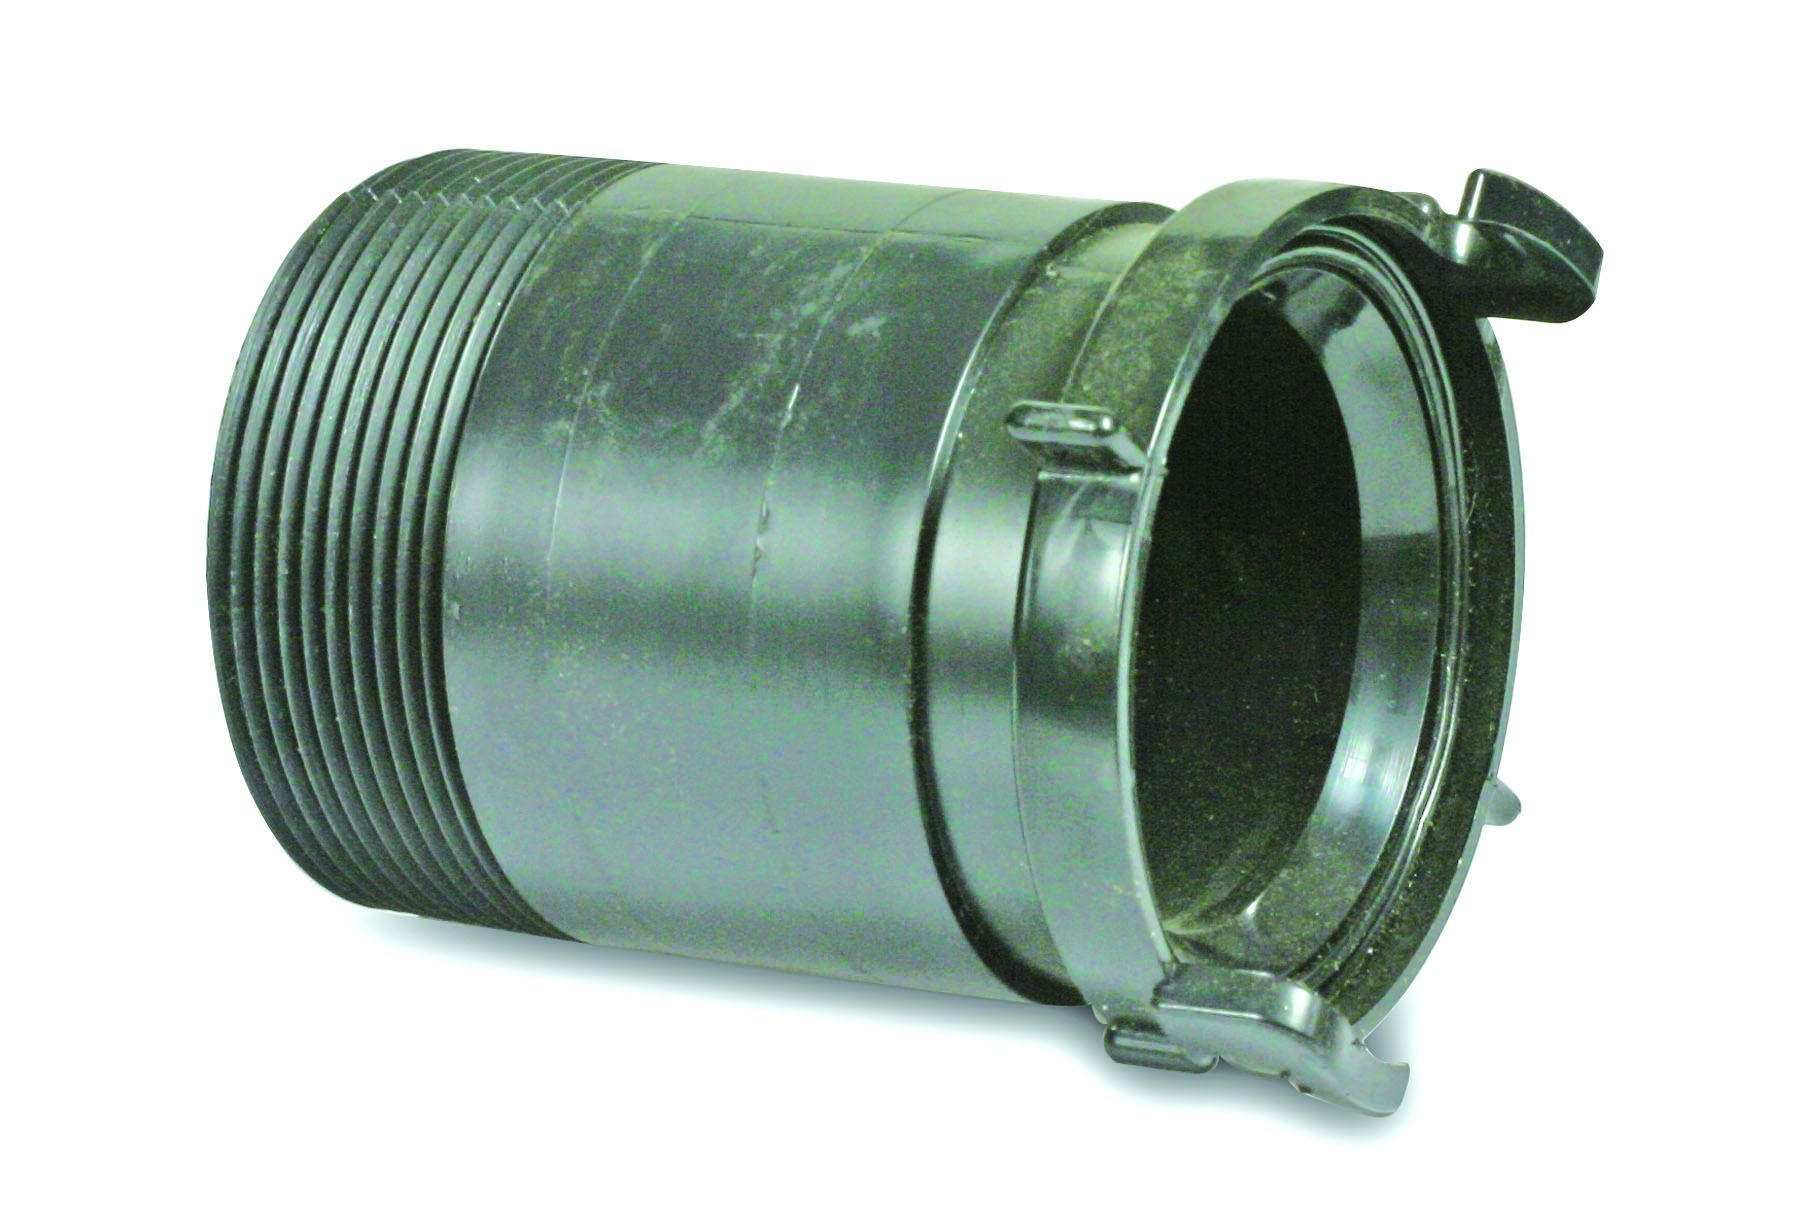 39422 Camco Sewer Hose Connector For Permanently Connecting Rv Bayonet Fitting To 3 Inch Threaded Plumbing Pipe